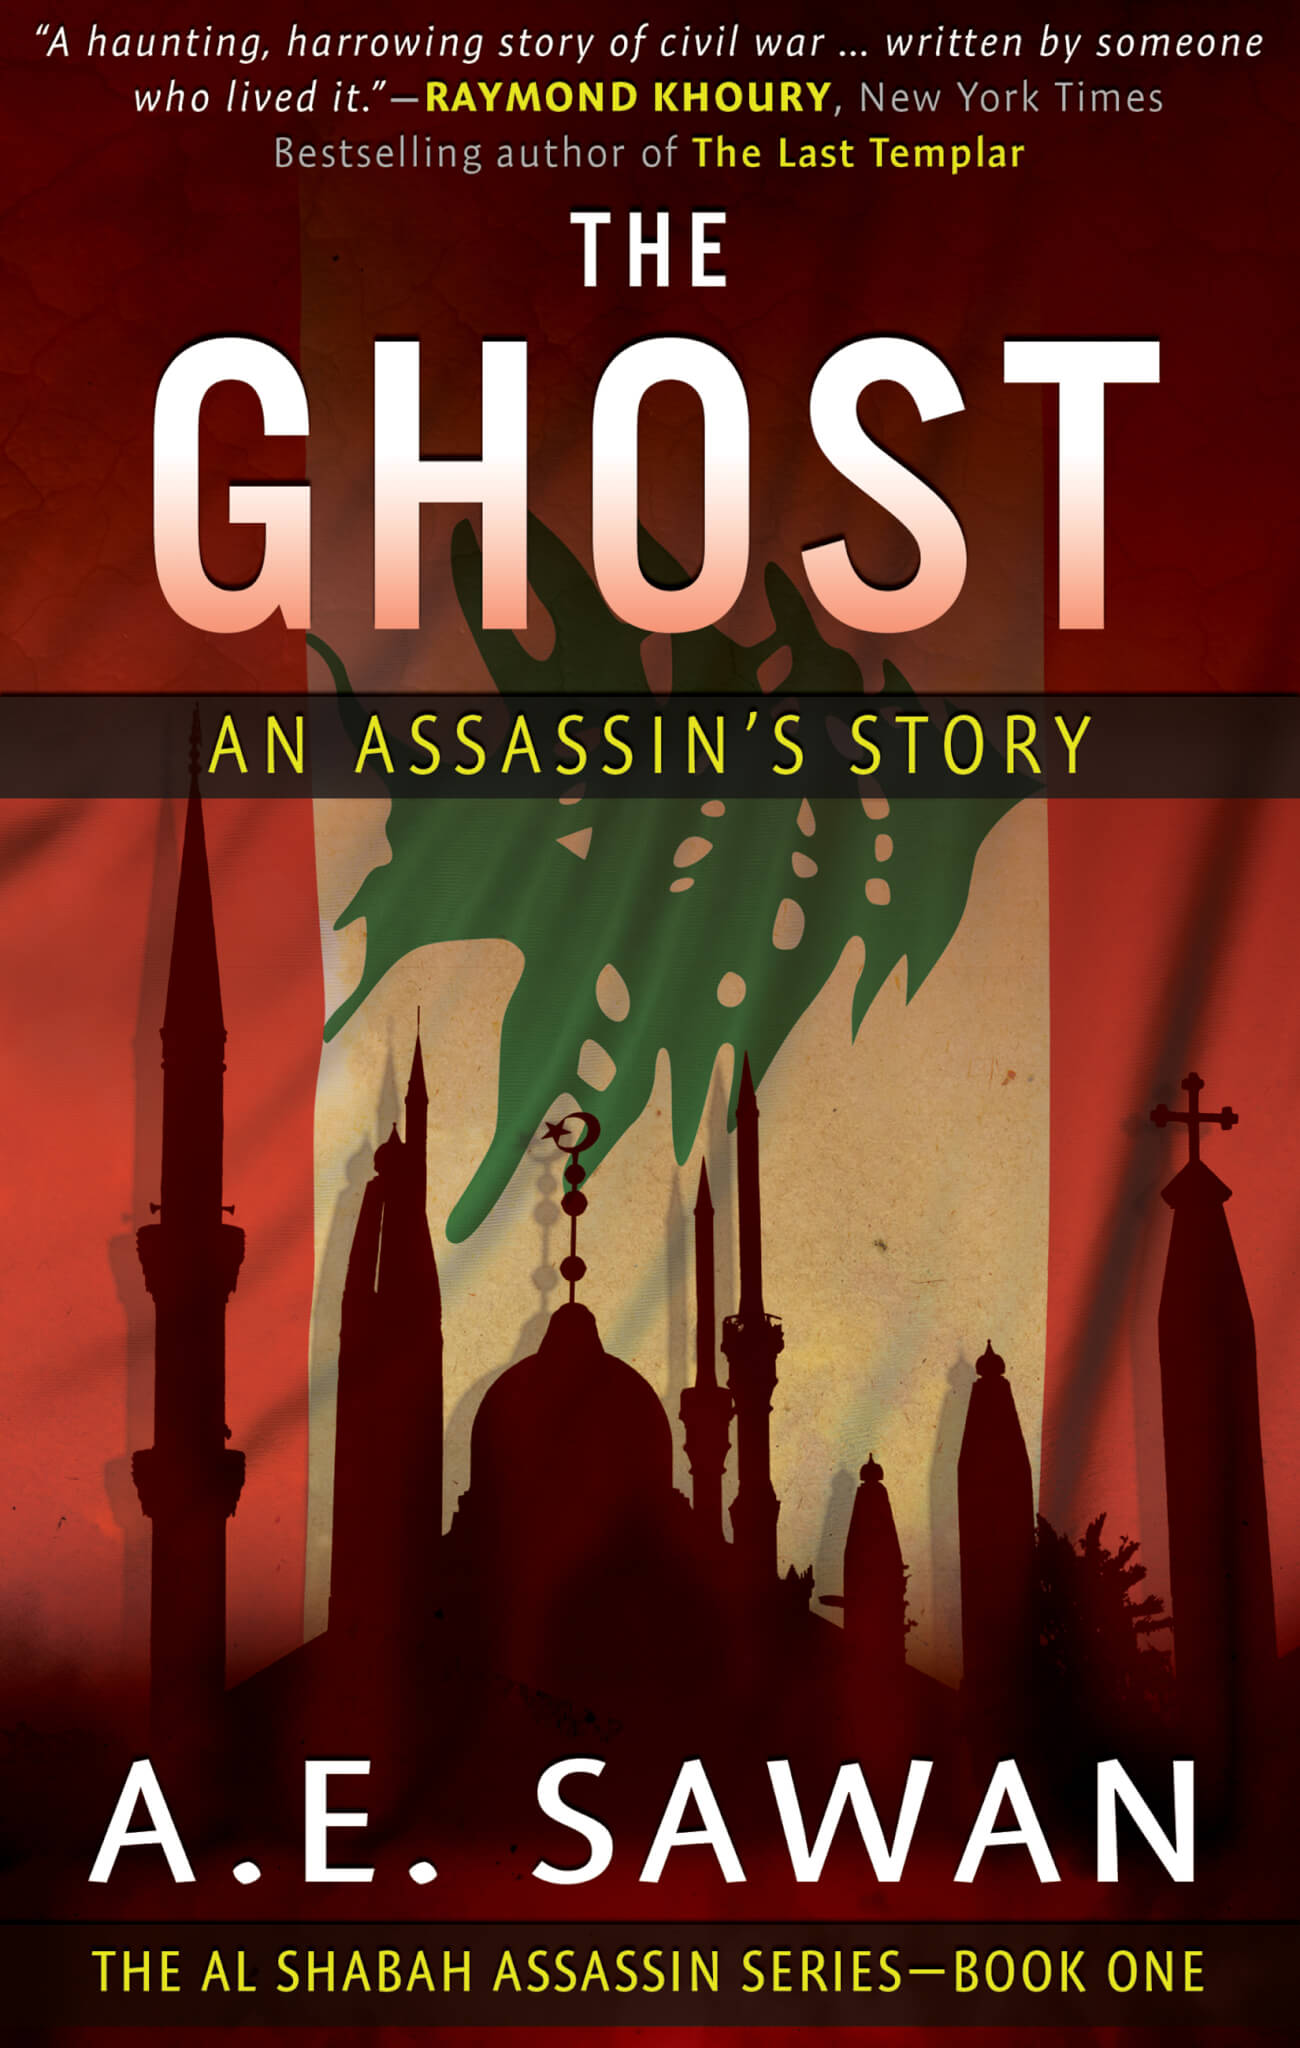 AE Sawan Presents A Story Of Obsession And Revenge In THE GHOST